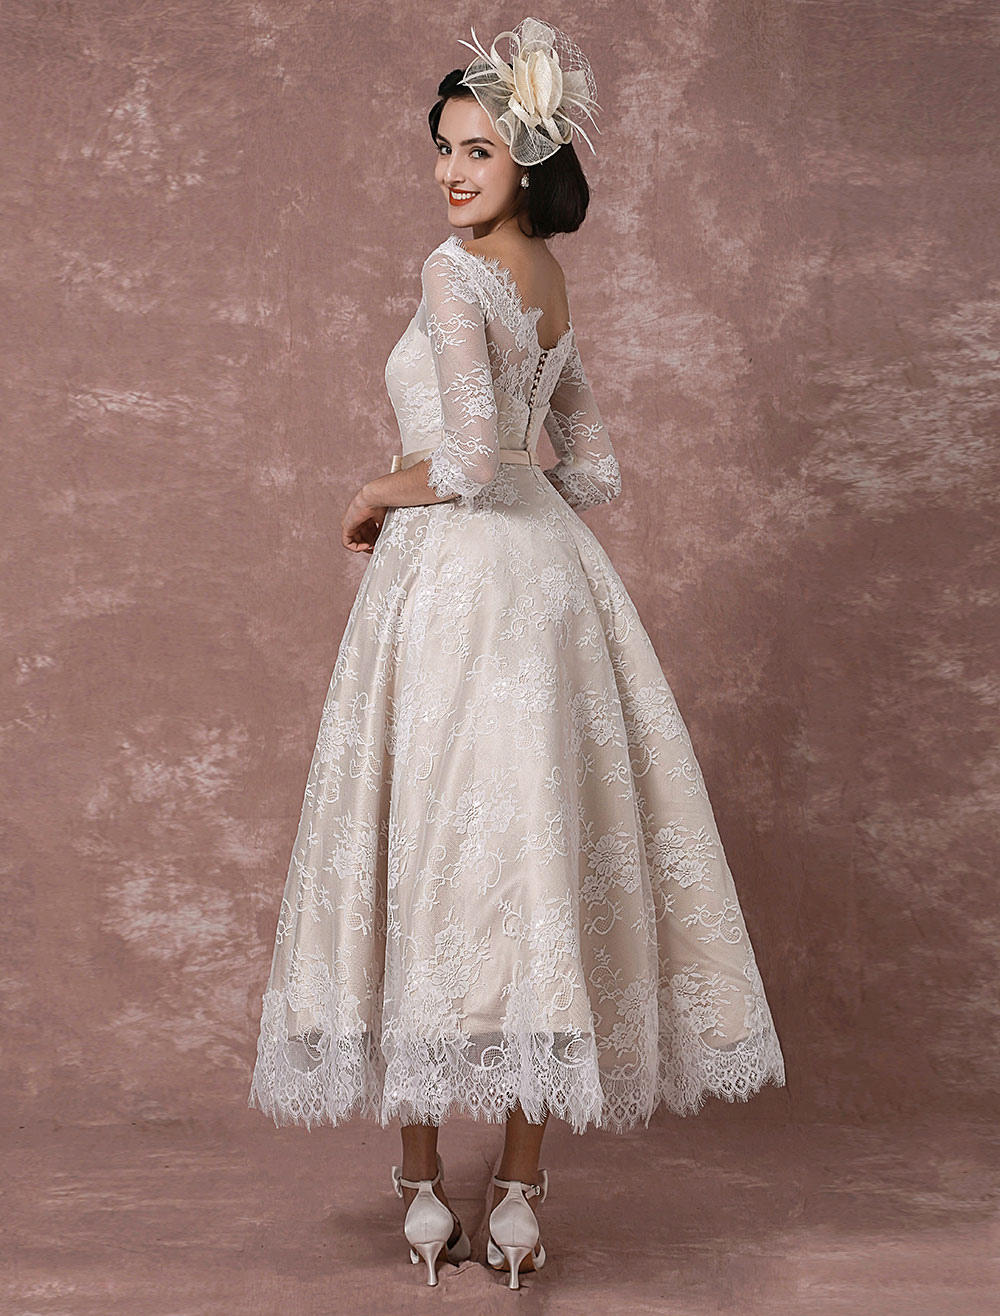 b9f9e6418158 Lace Wedding Dress Vintage Bateau Champagne Half Sleeves Bridal Gown A line  Backless Tea length Sash Reception Bridal Dress Milanoo - Milanoo.com